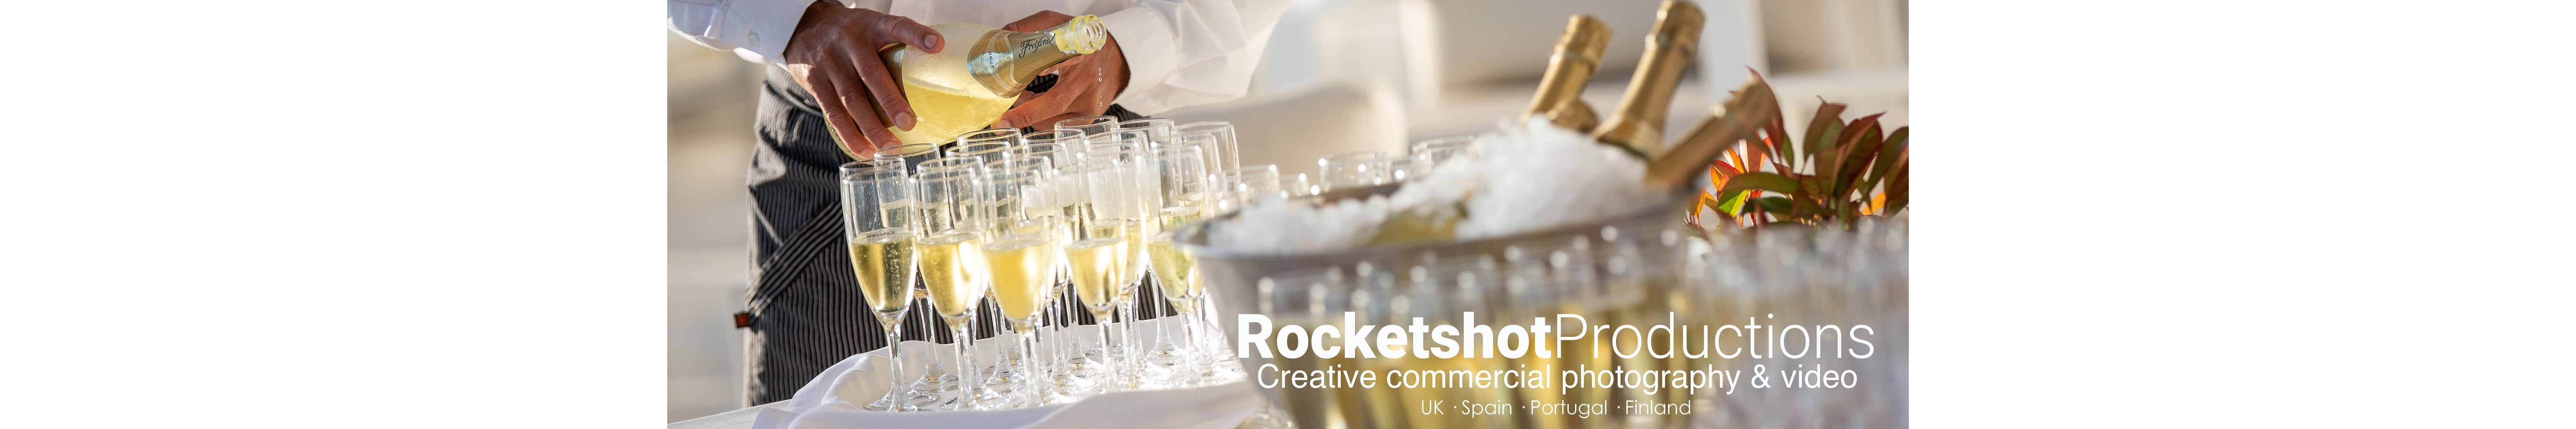 Rocketshot Productions Commercial Photo/Video Services